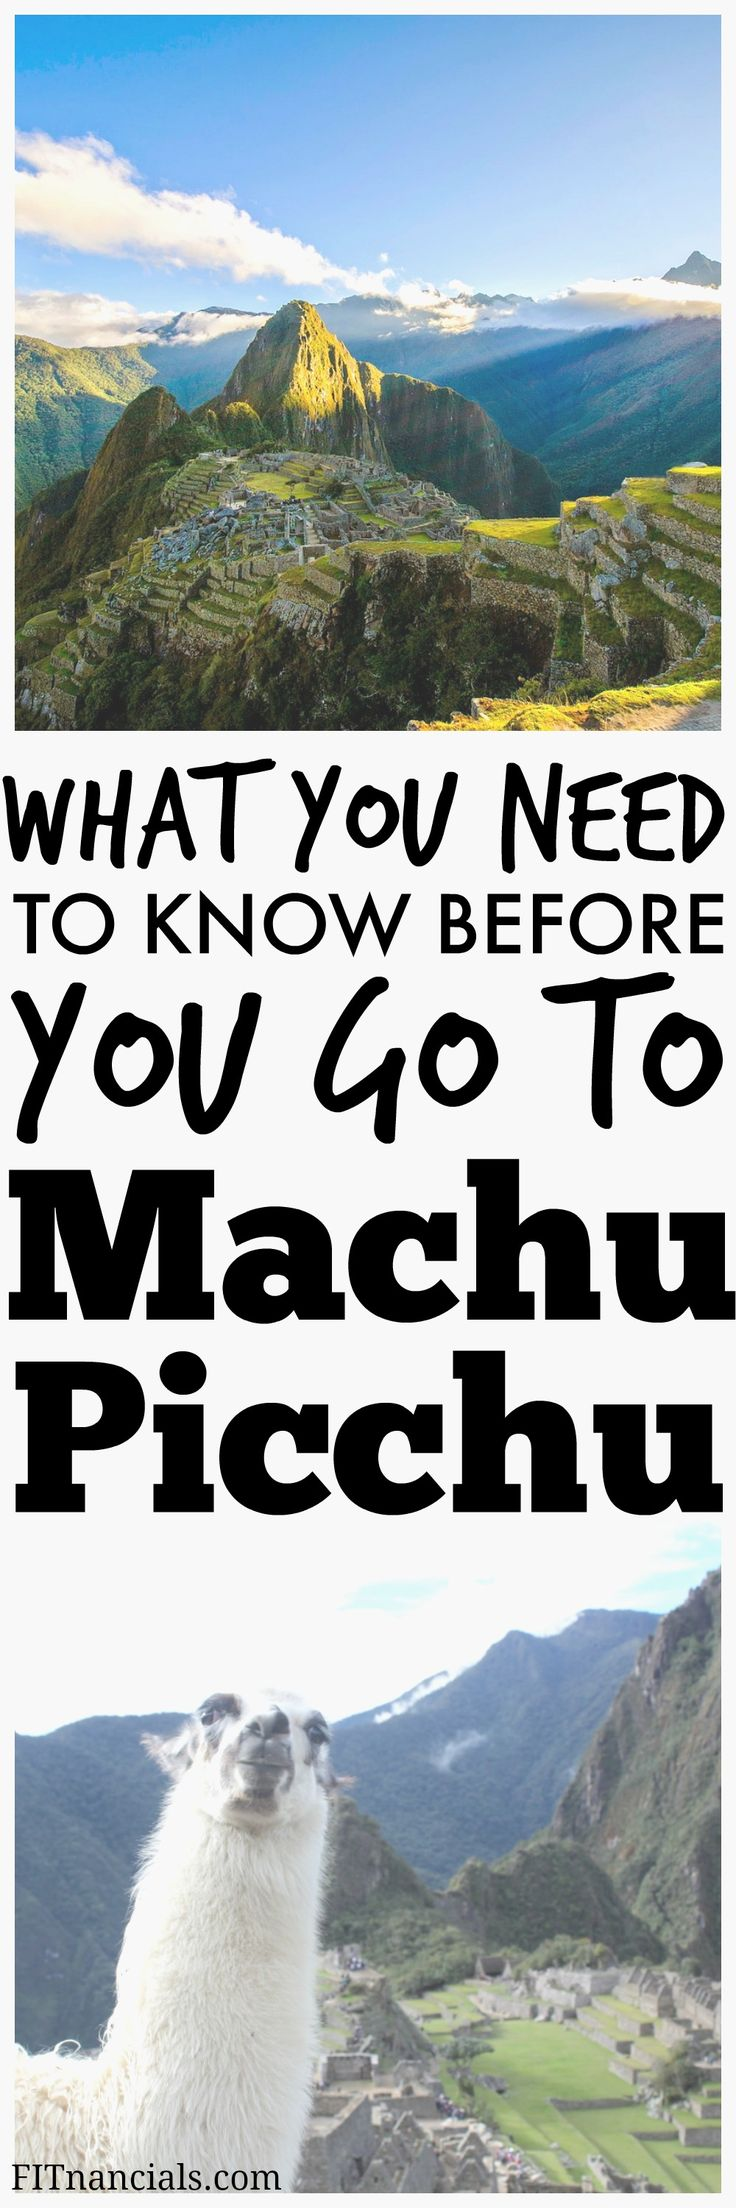 Find out what you need to know before you go to Machu Picchu. This is a great list!